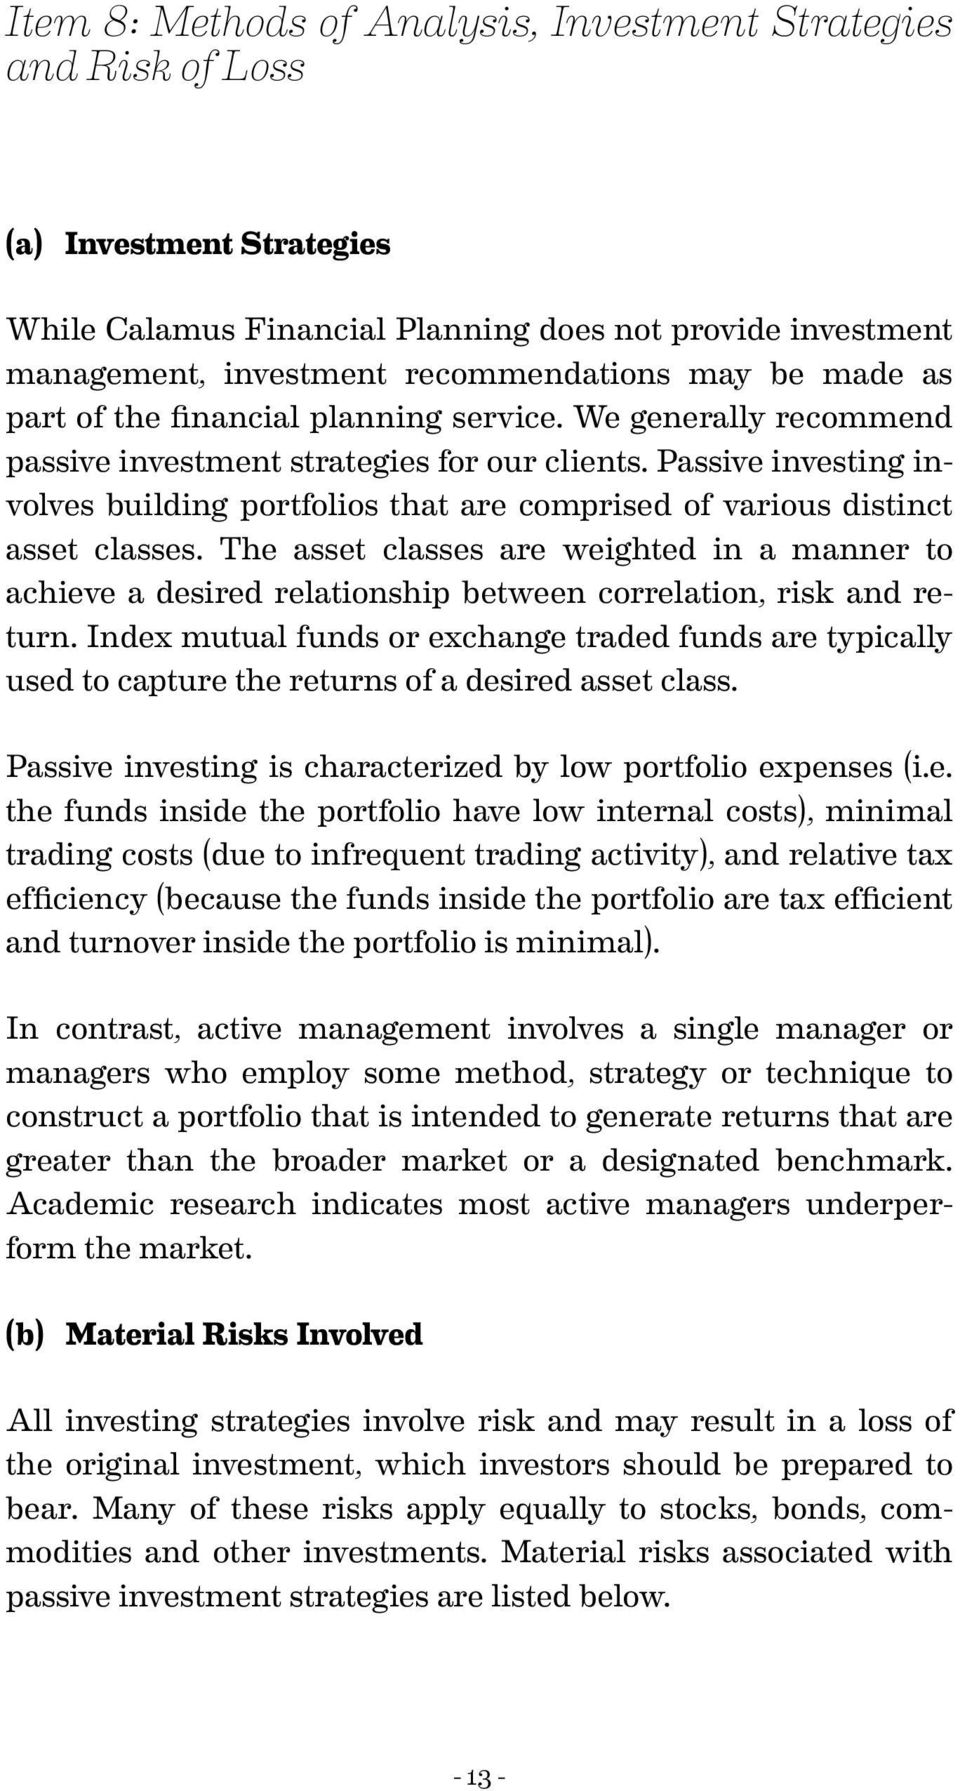 Passive investing involves building portfolios that are comprised of various distinct asset classes.